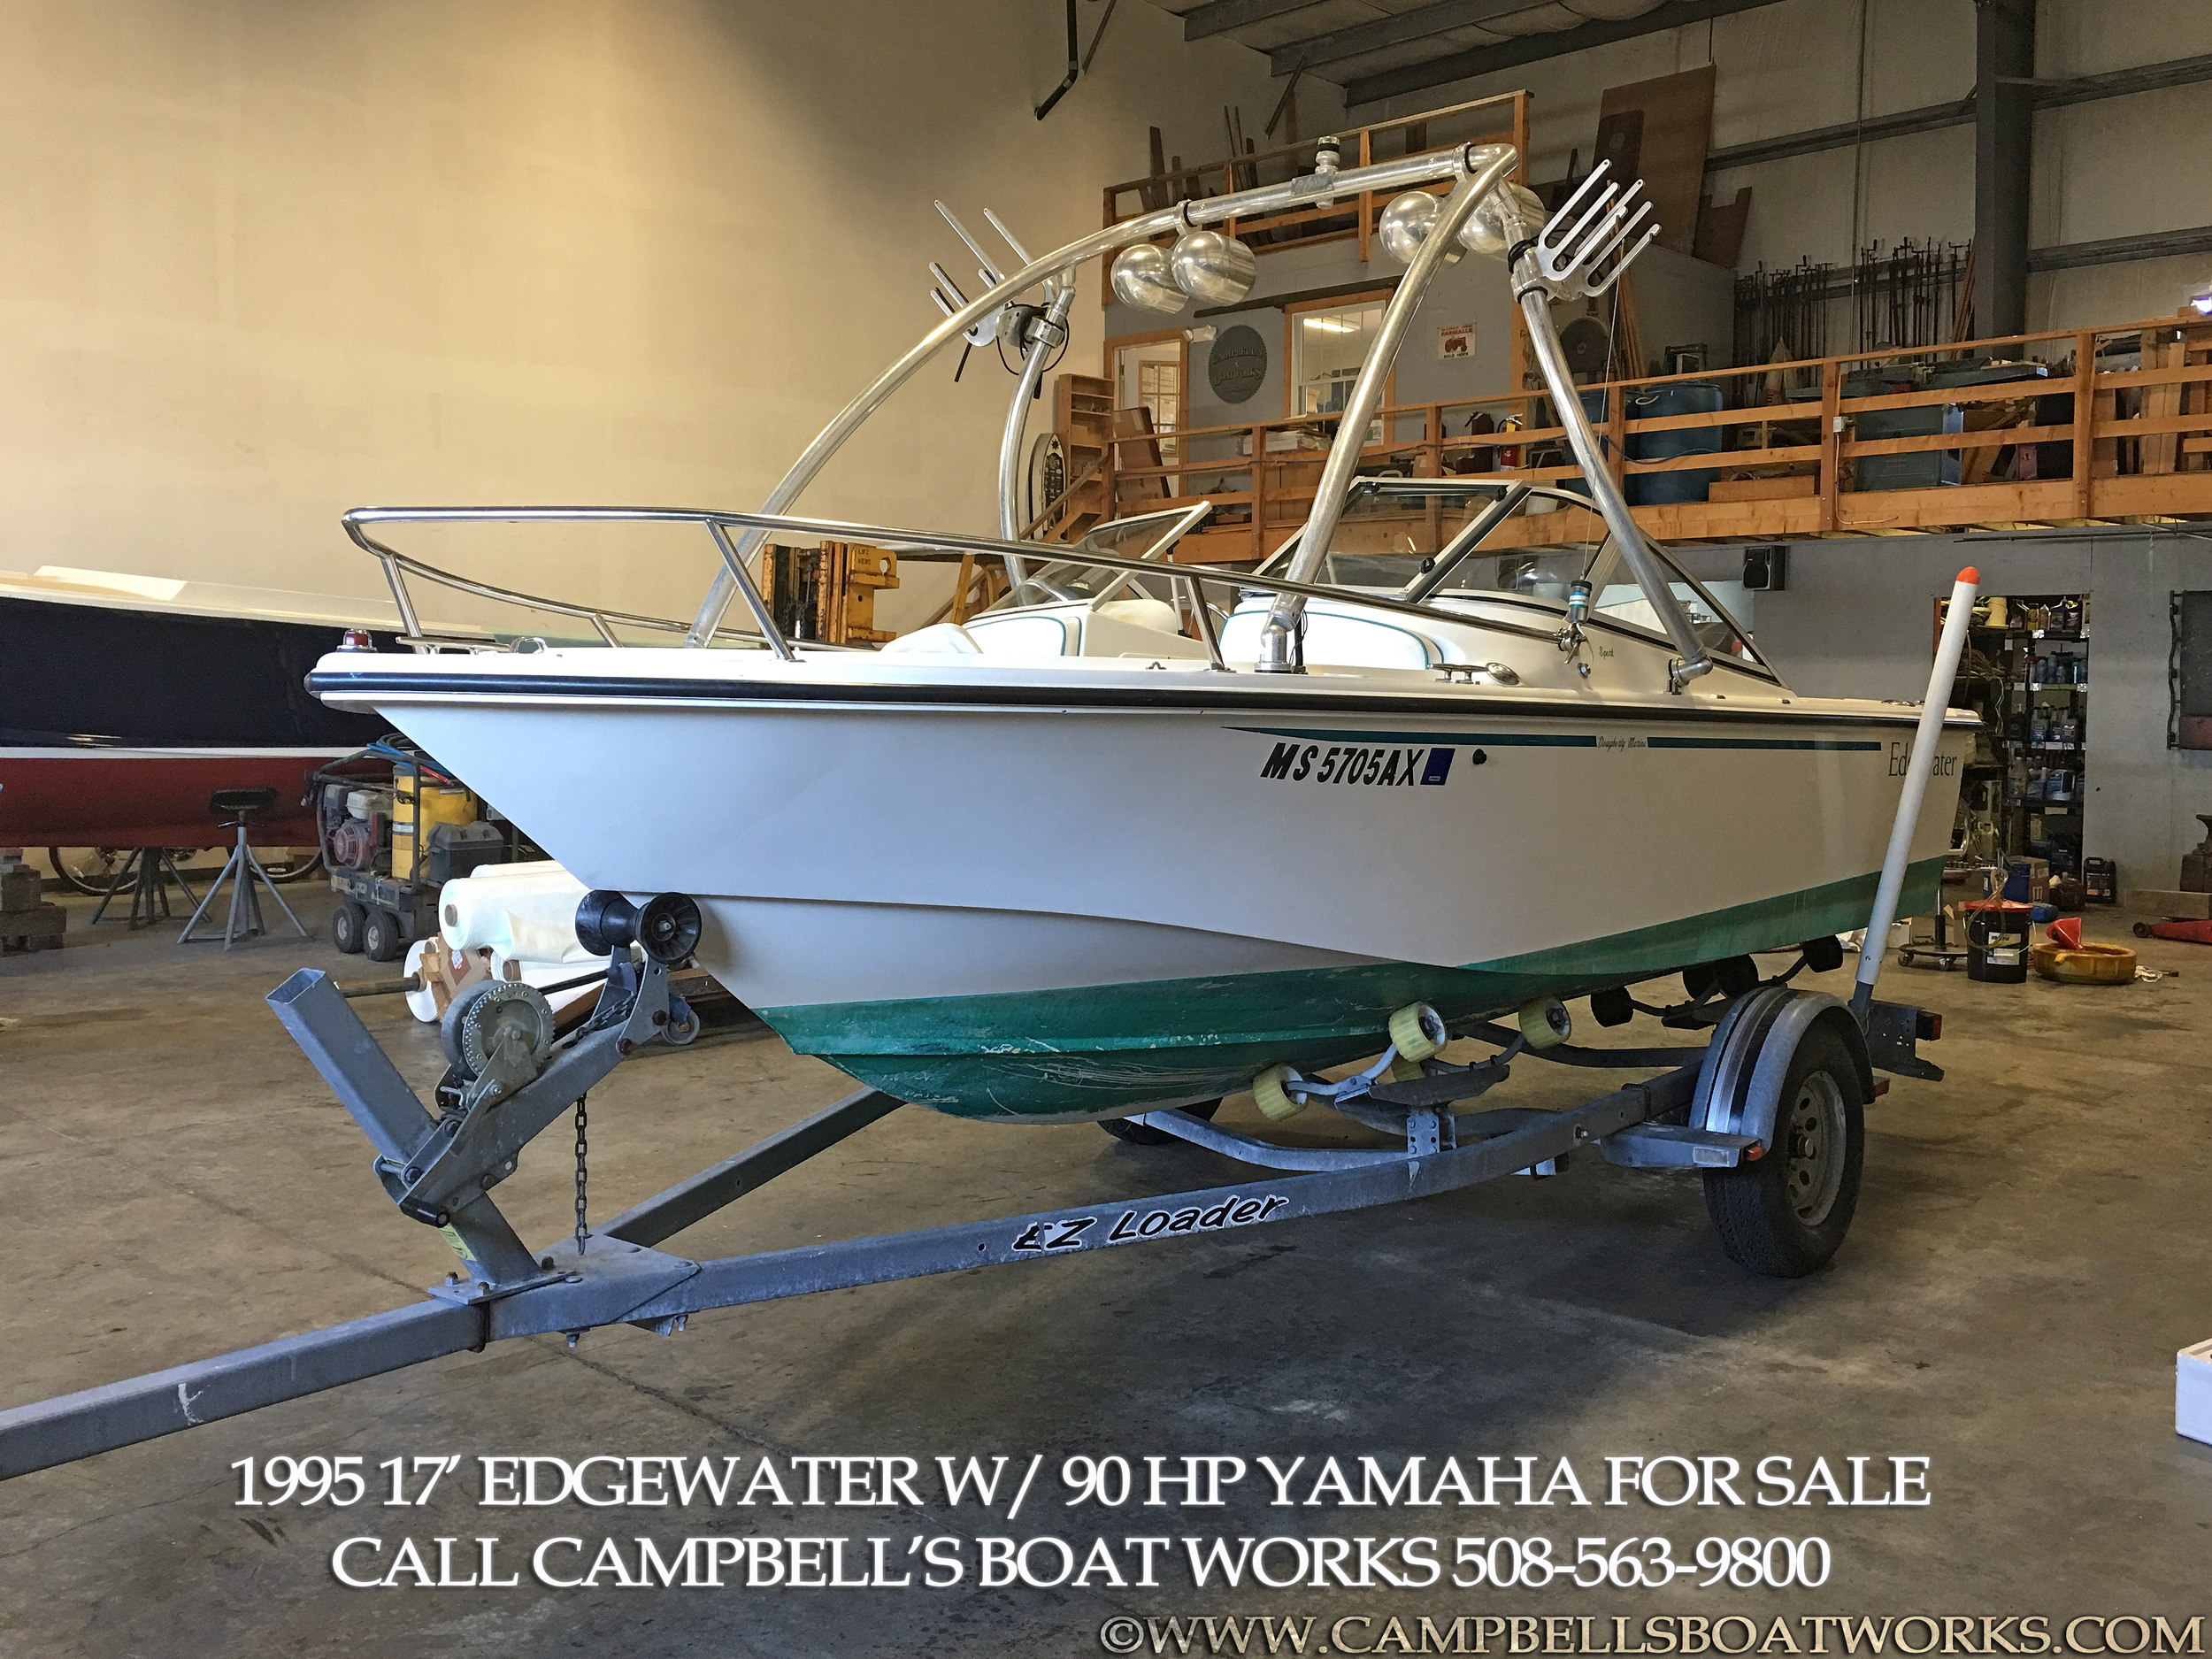 edgewater-17-boat-for-sale-wakeboard-tower-speakers.png